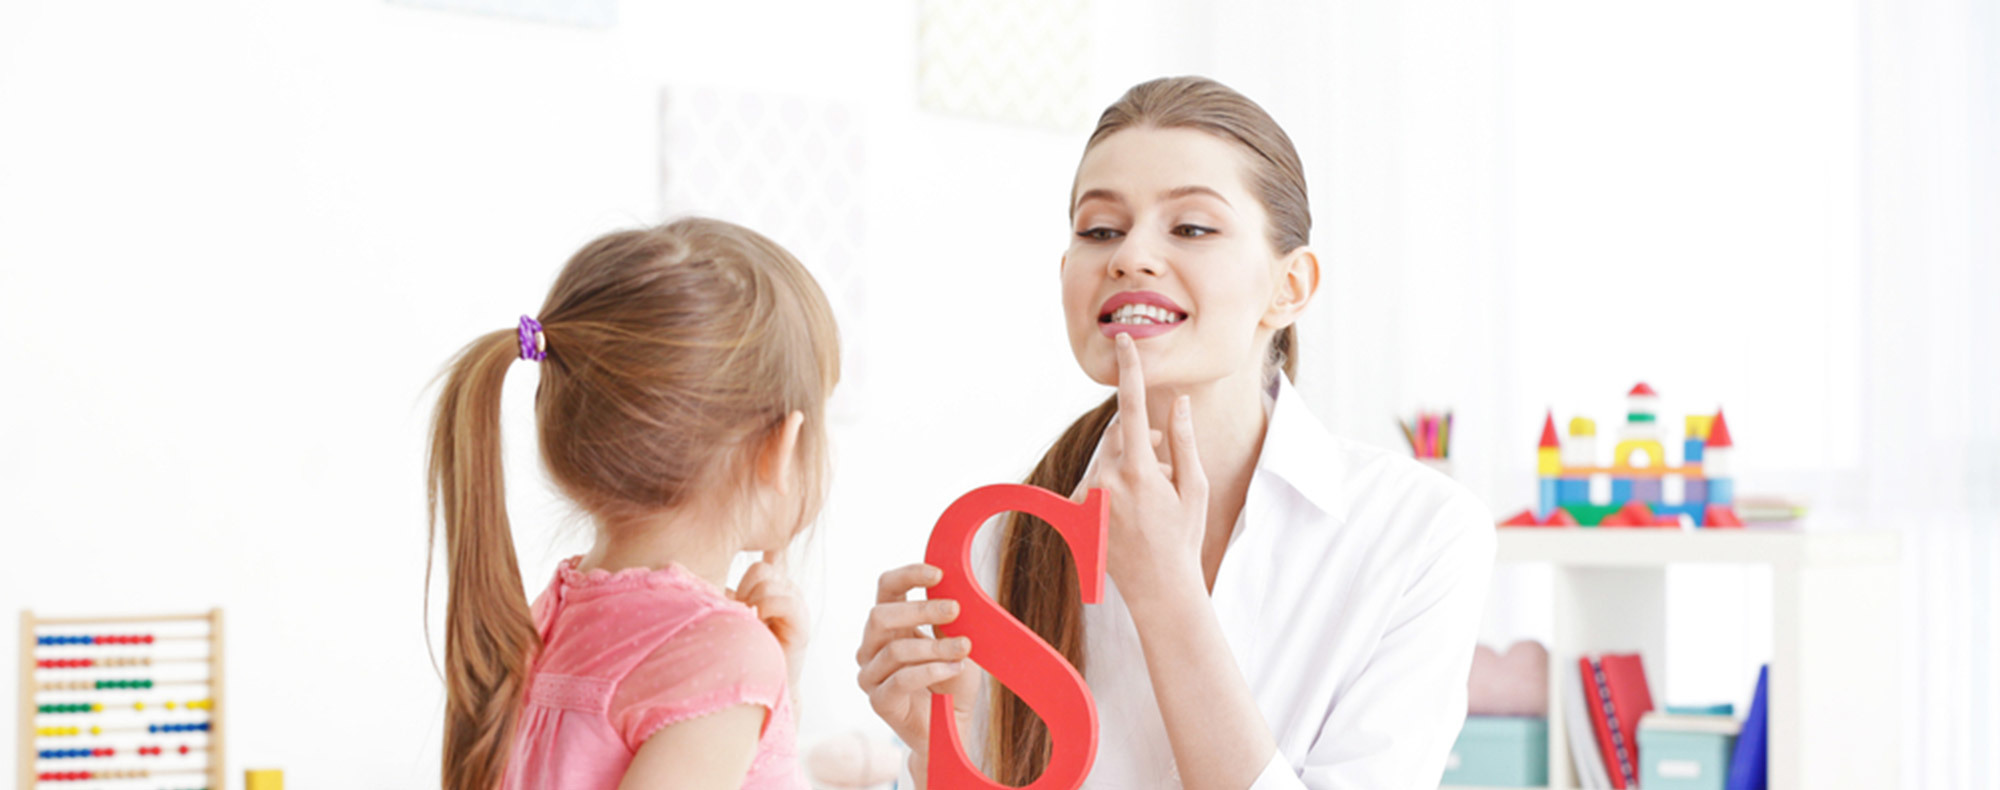 Allied Health Jobs in Melbourne | Speech Therapists | Tradewind Australia